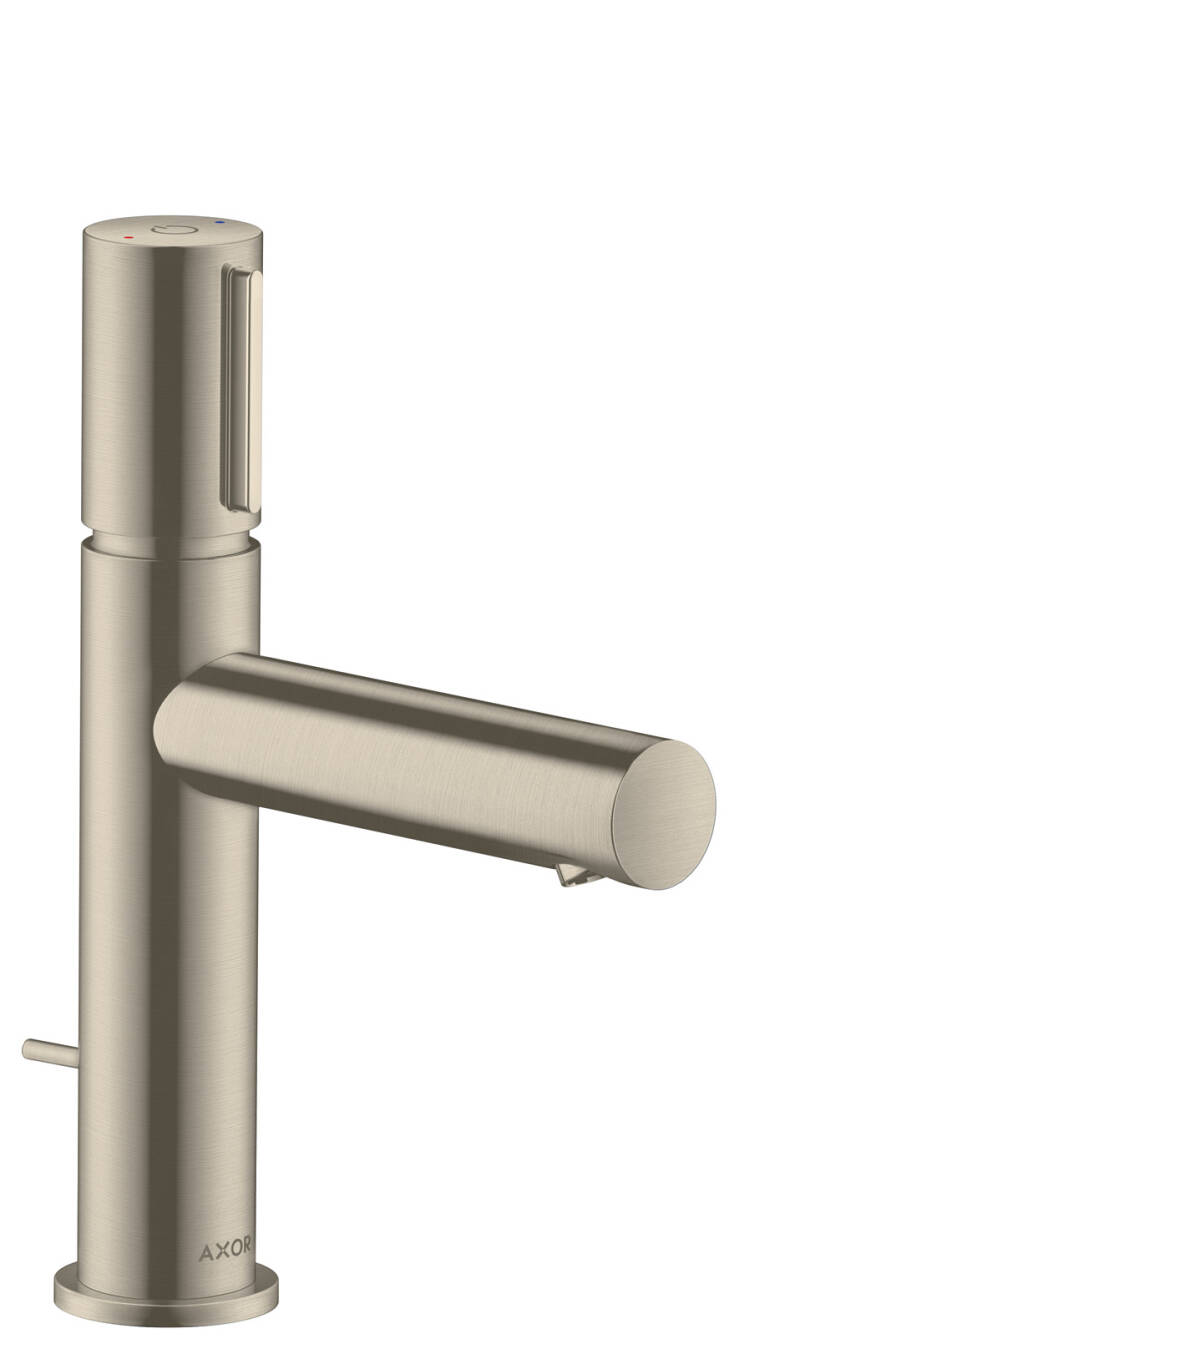 Basin mixer Select 110 with pop-up waste set, Brushed Nickel, 45010820